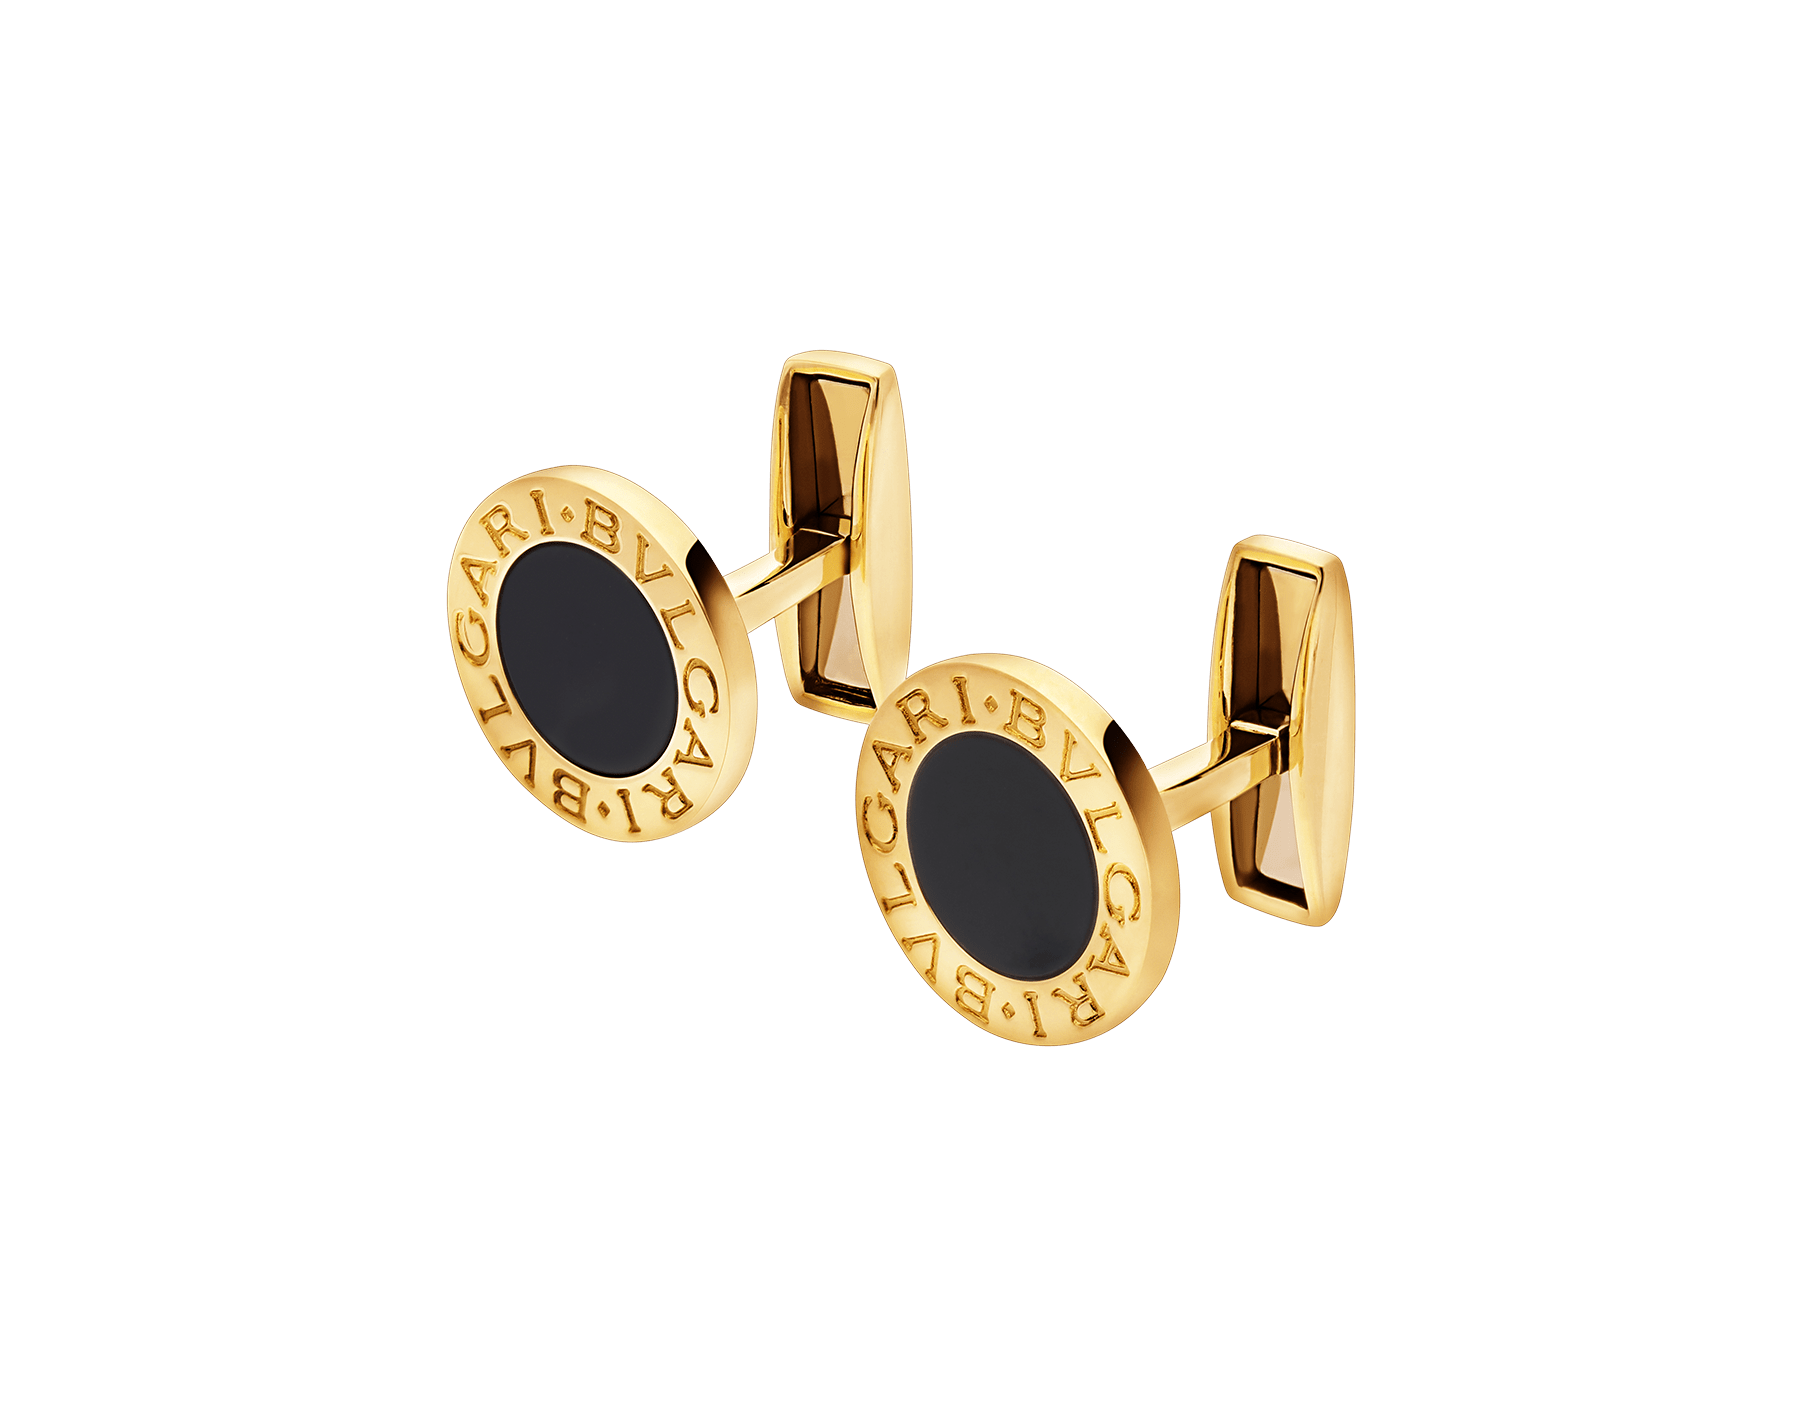 BVLGARI BVLGARI 18kt yellow gold cufflinks set with black onyx elements 322302 image 2